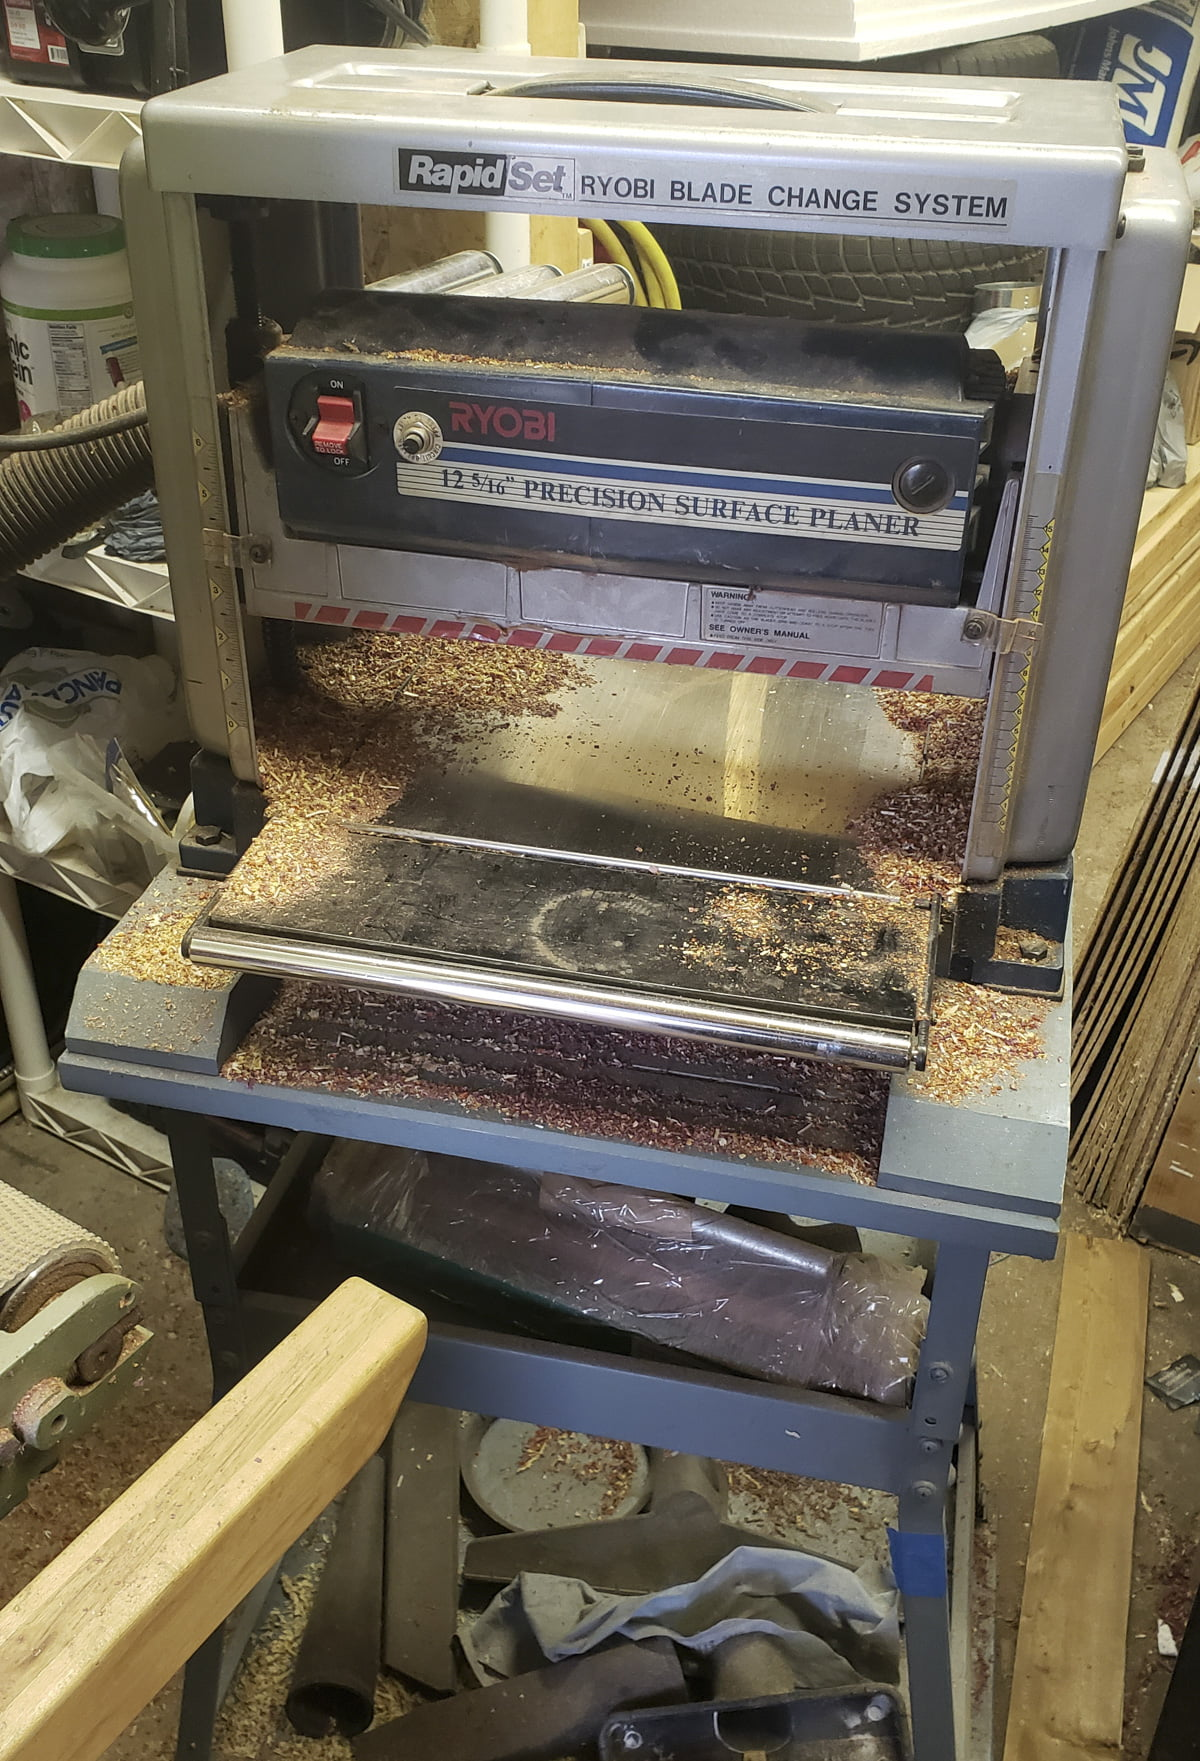 A planer in a work shop.